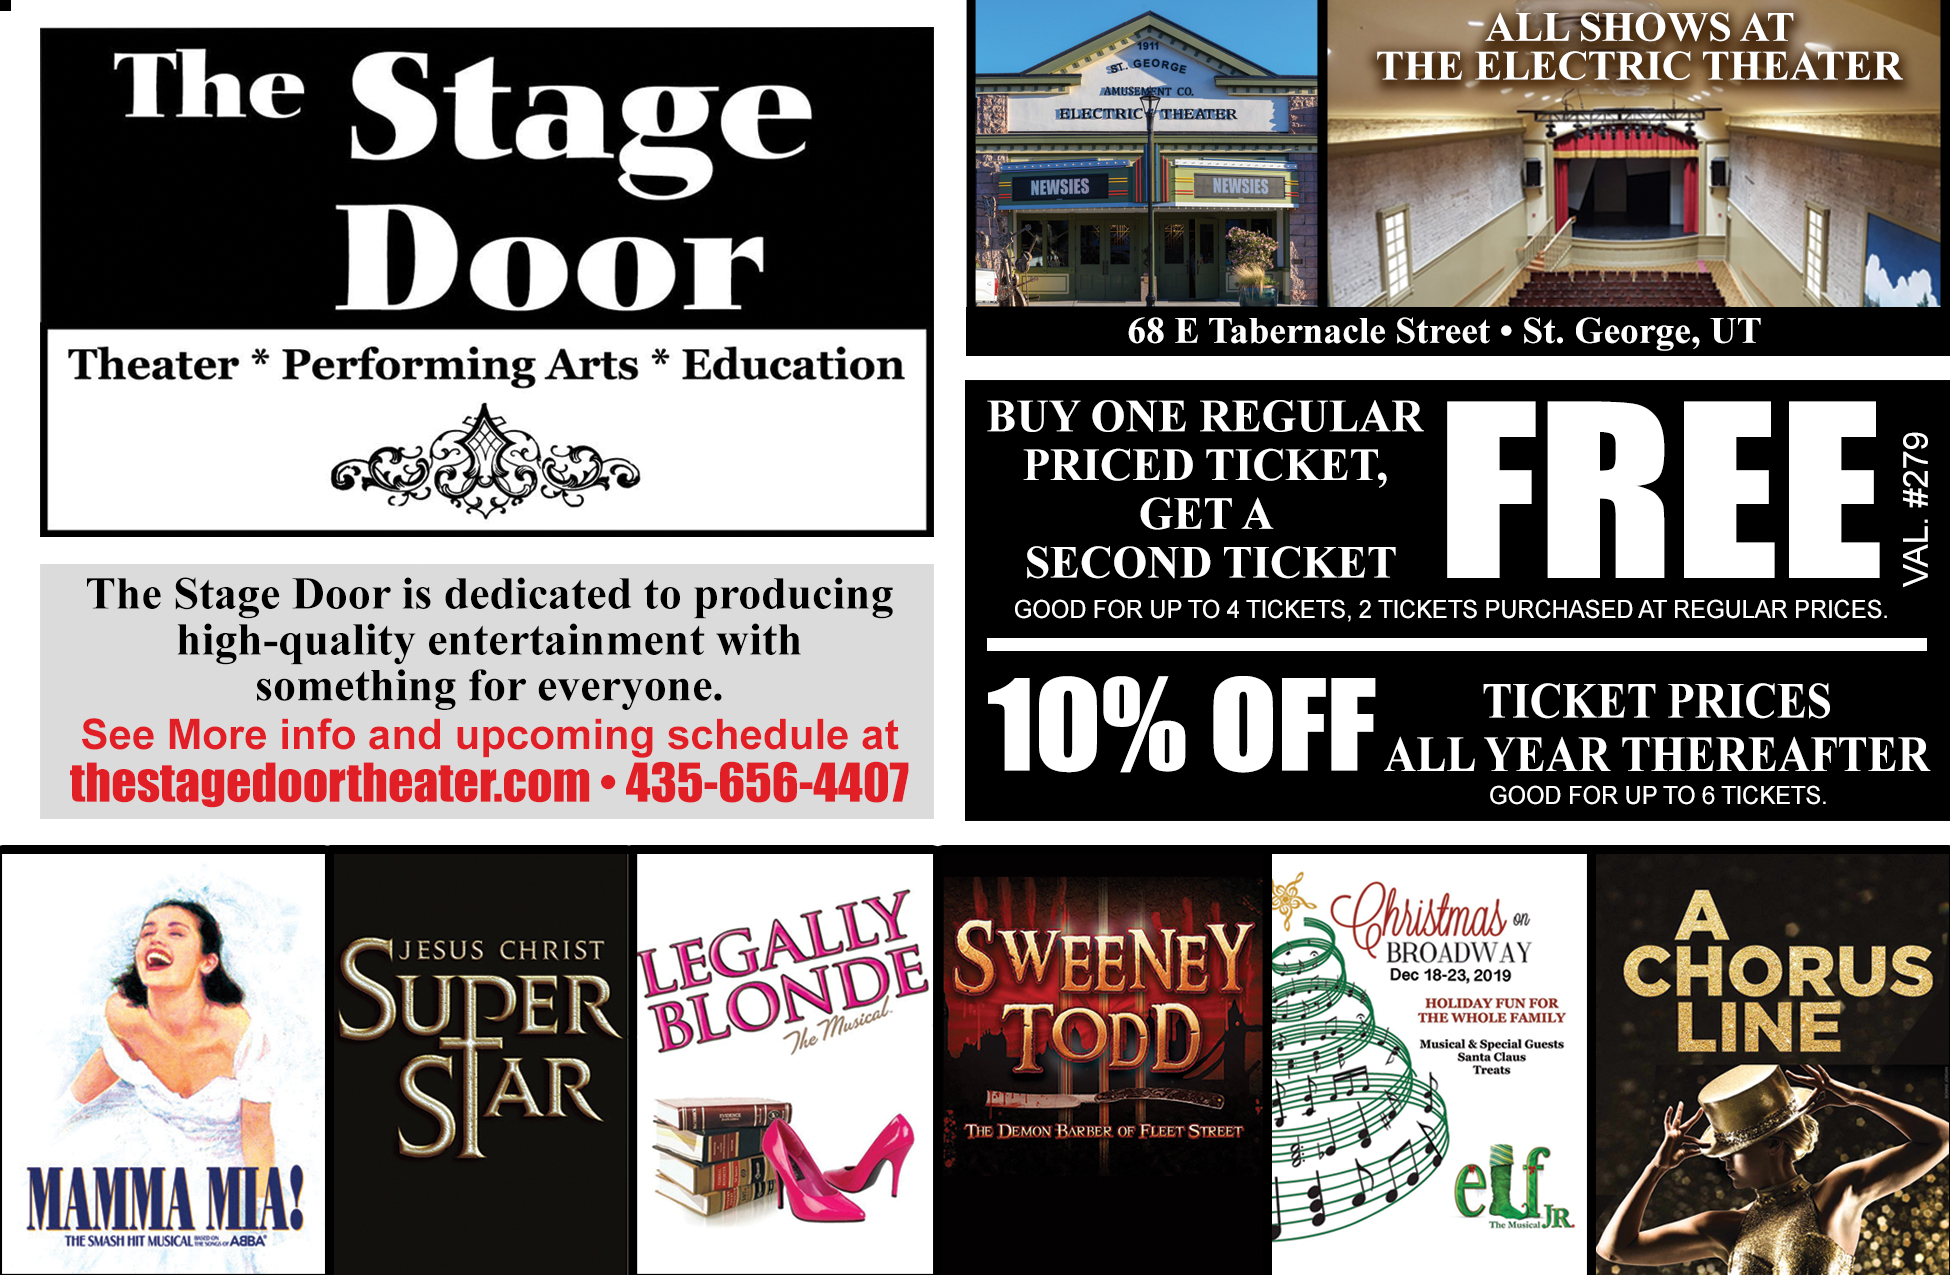 Stage Door Productions - Theater, performing arts, education